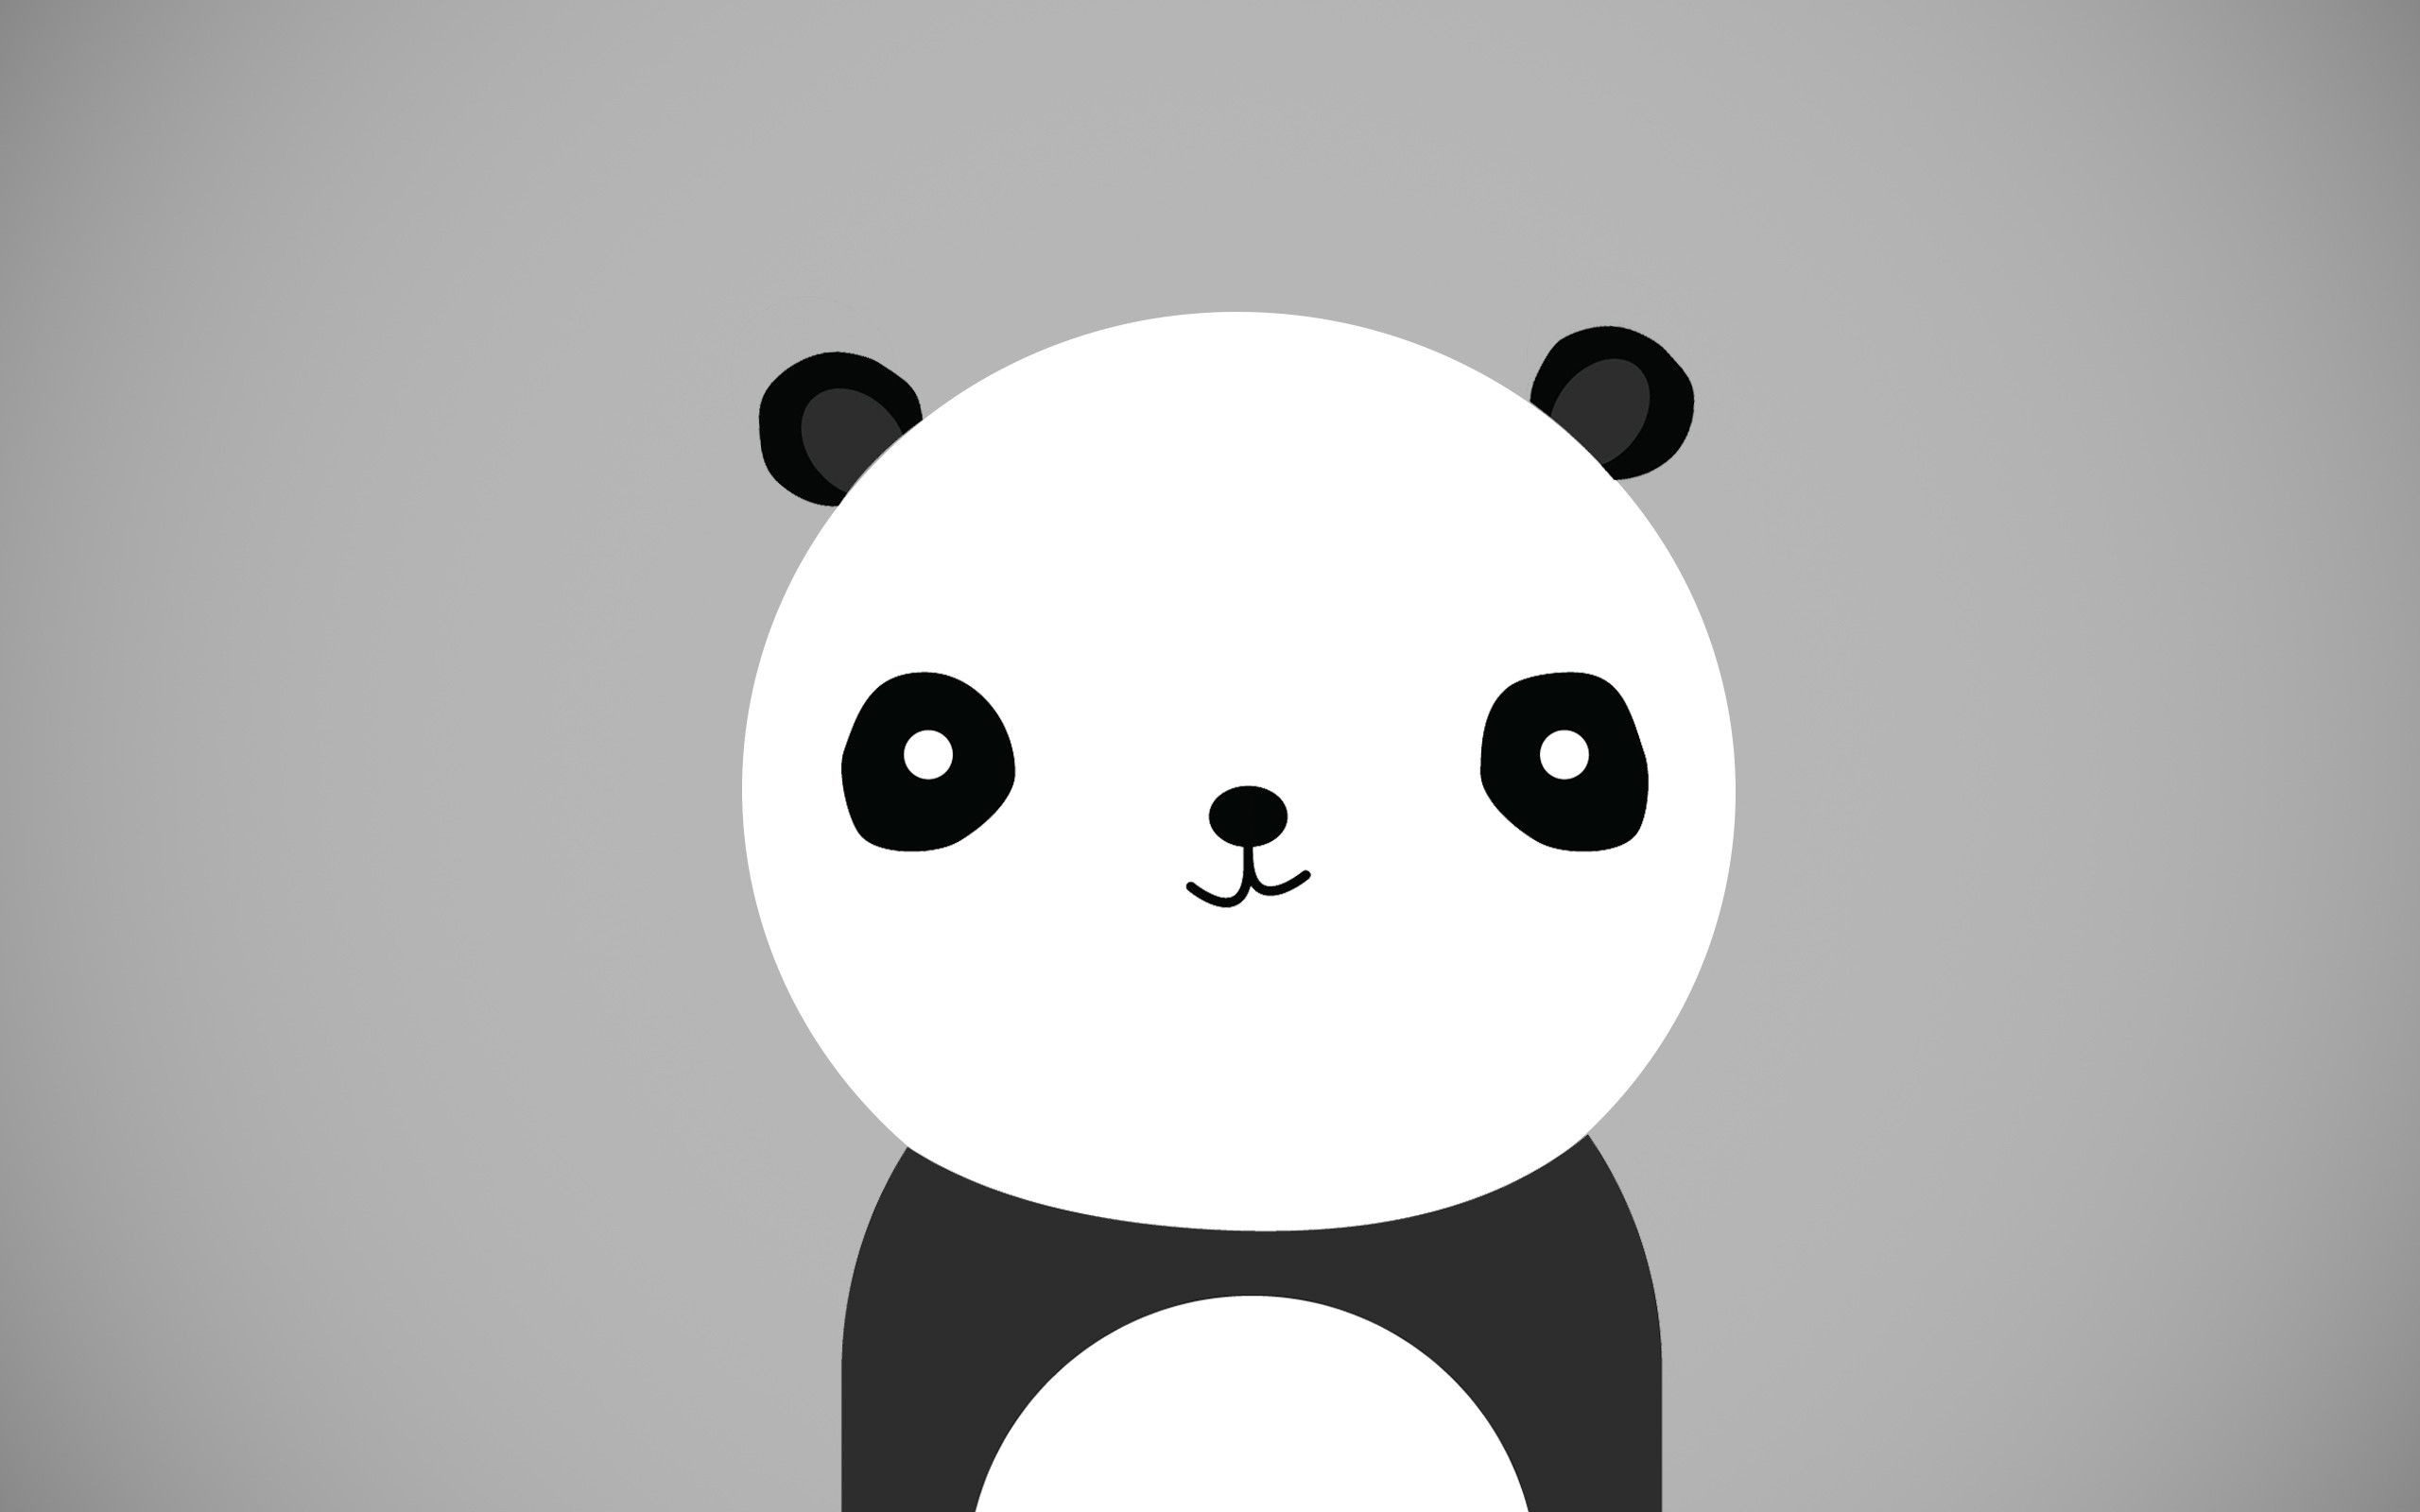 Cute Wallpapers For Mobile: Cute Mustache Wallpapers On Tumblr ·① WallpaperTag